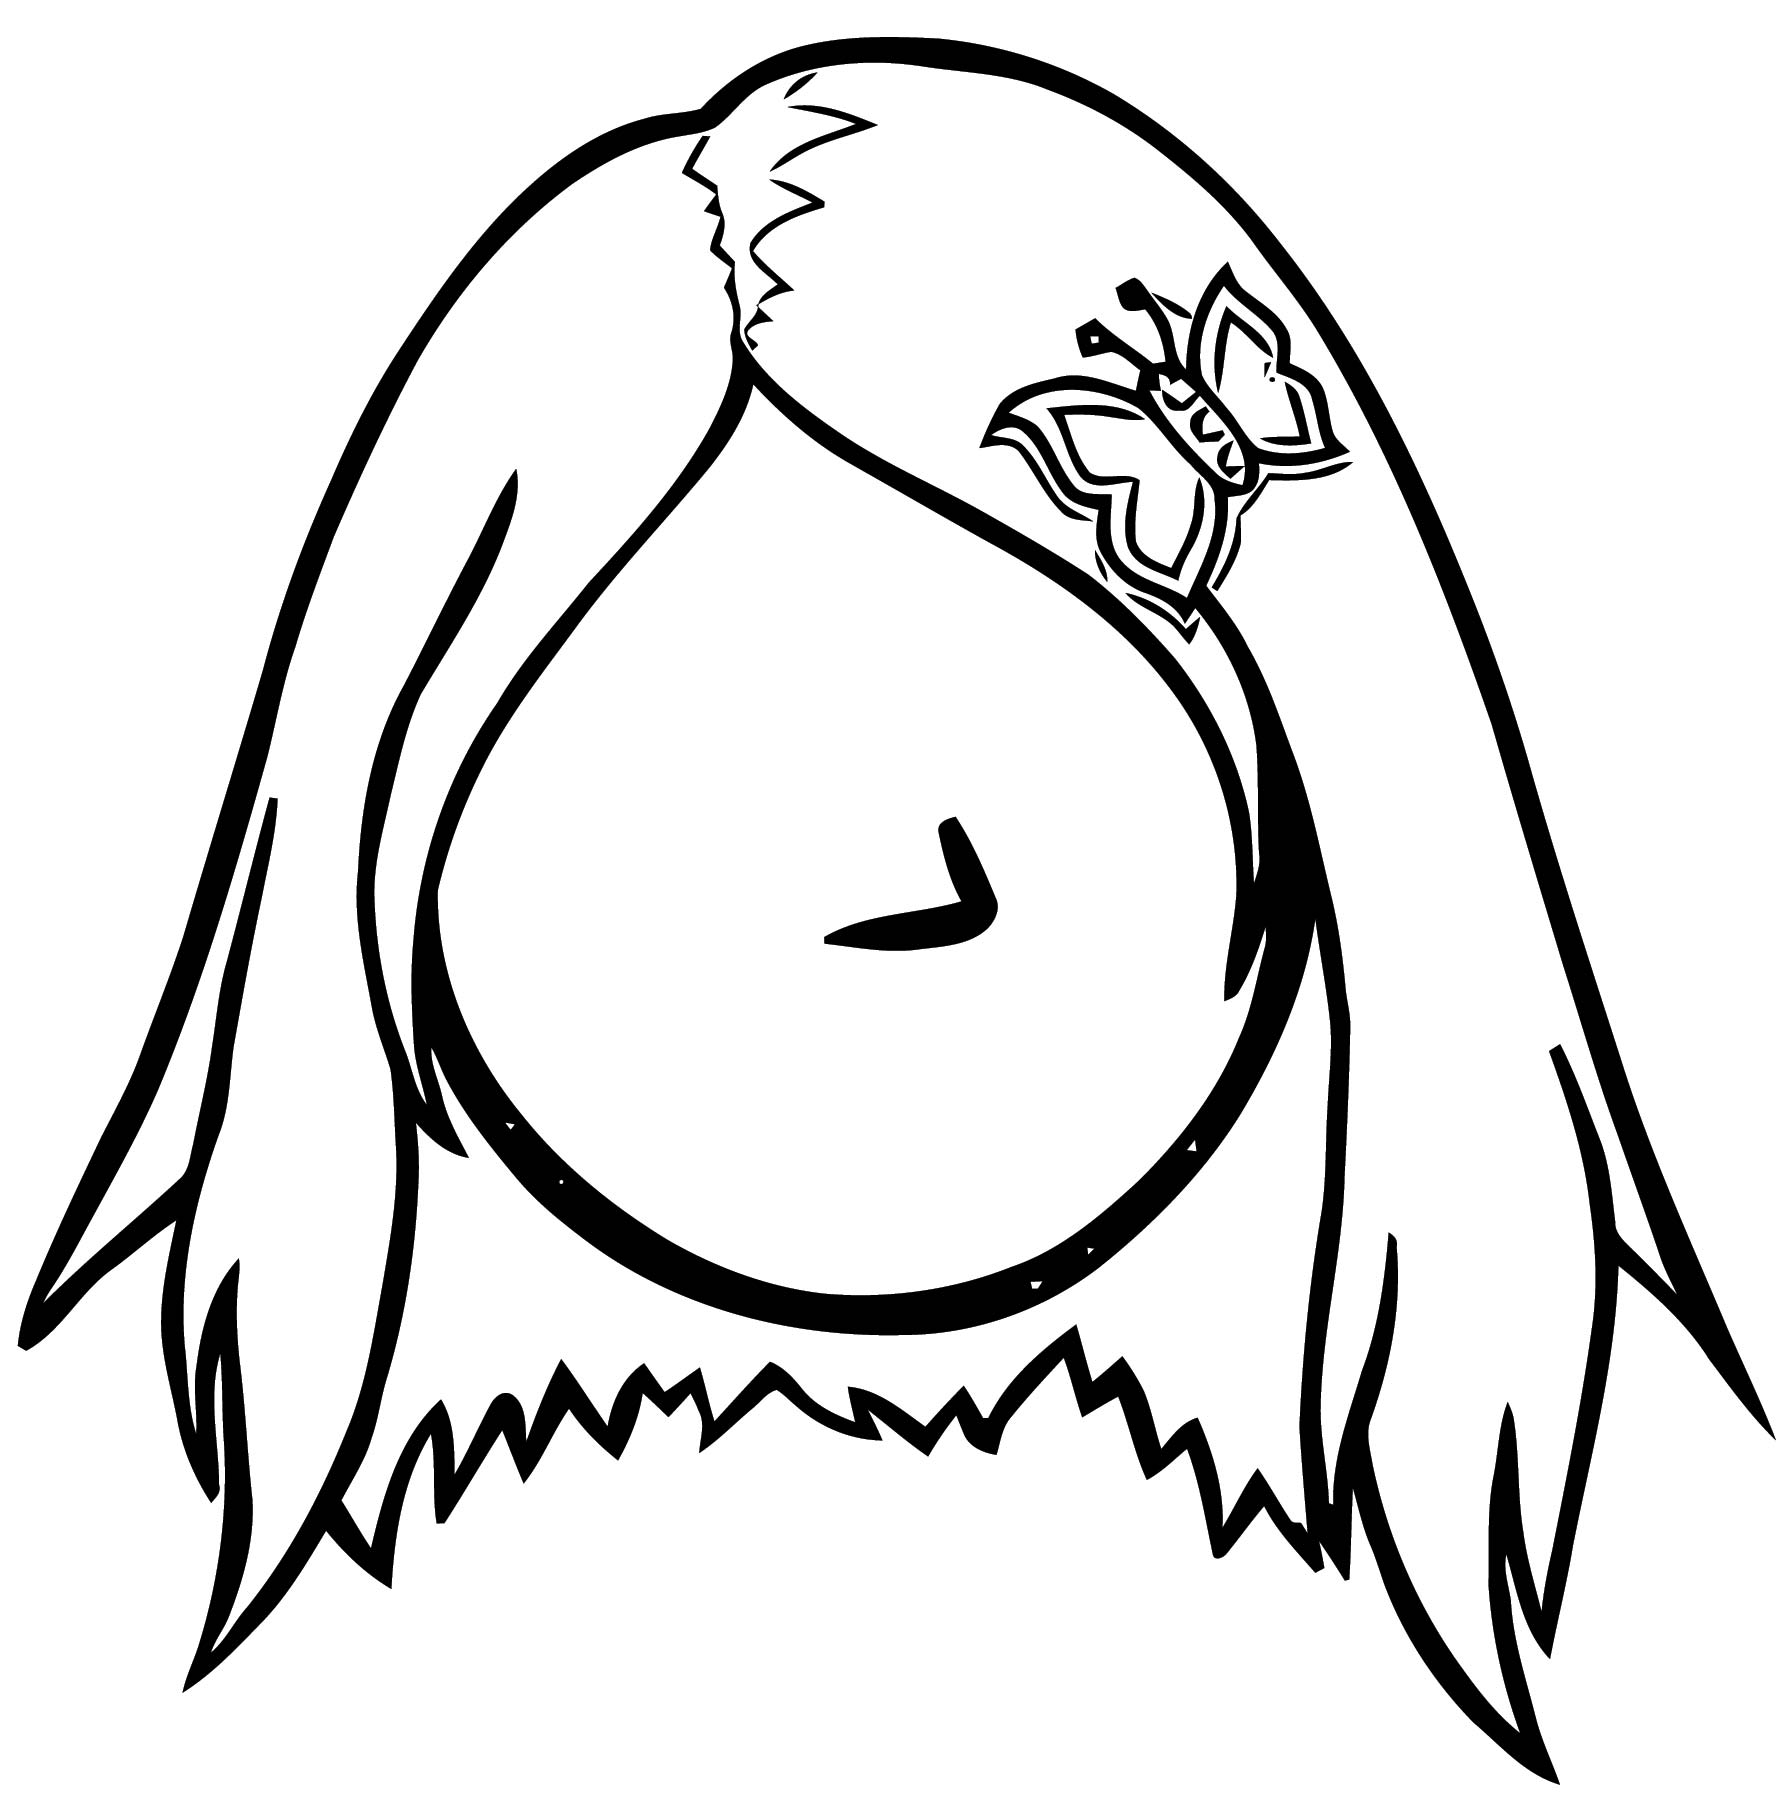 Dress Normally And Kool On Club Penguin Coloring Page